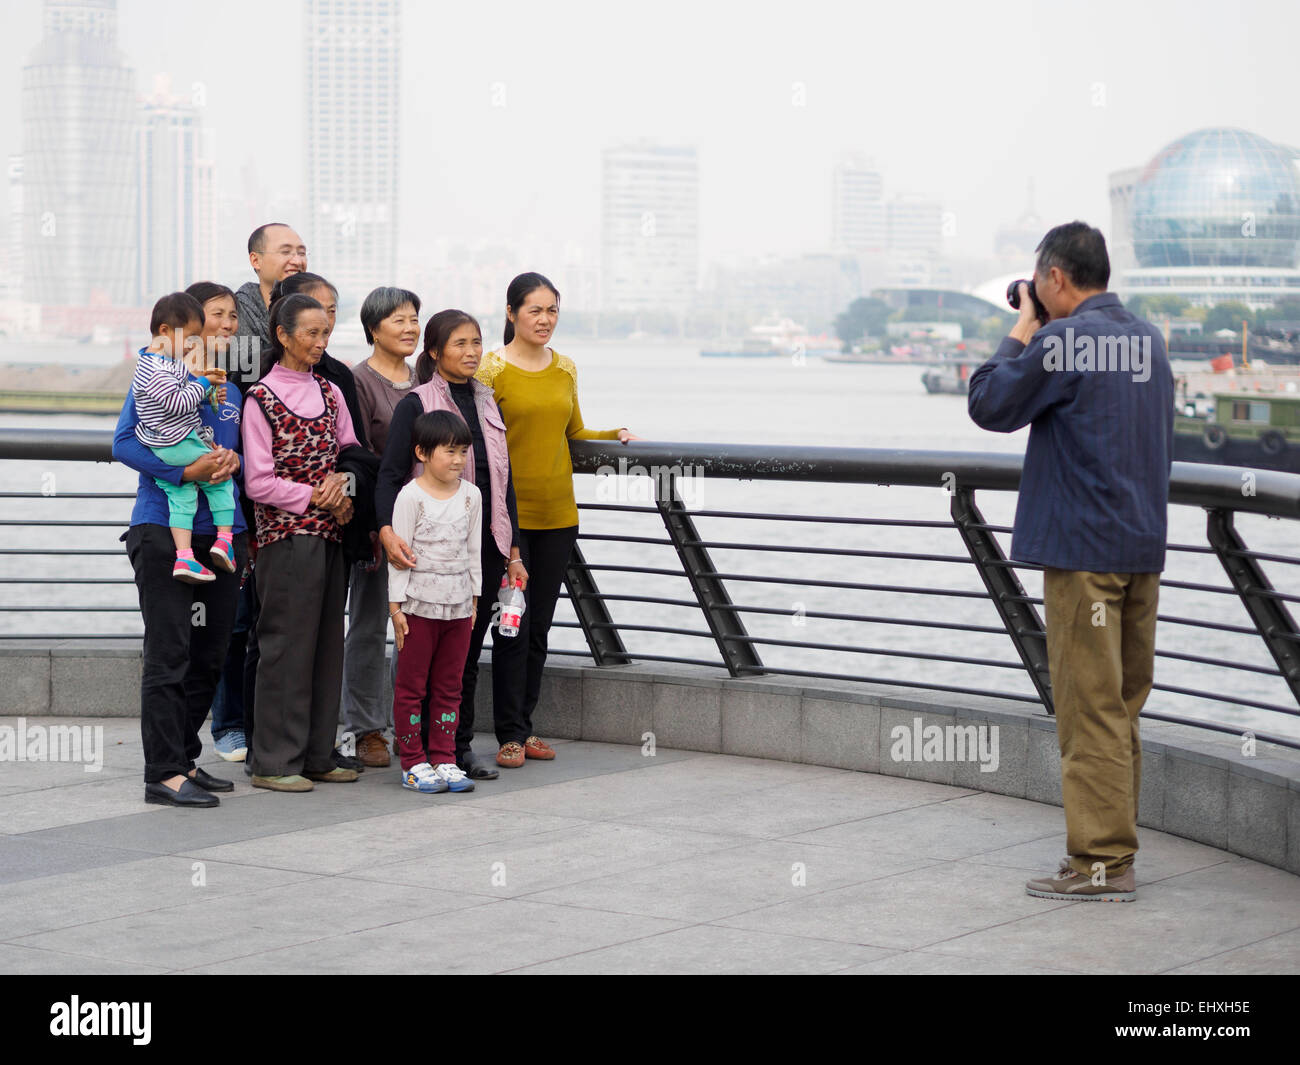 Asian man taking a family portrait - Stock Image